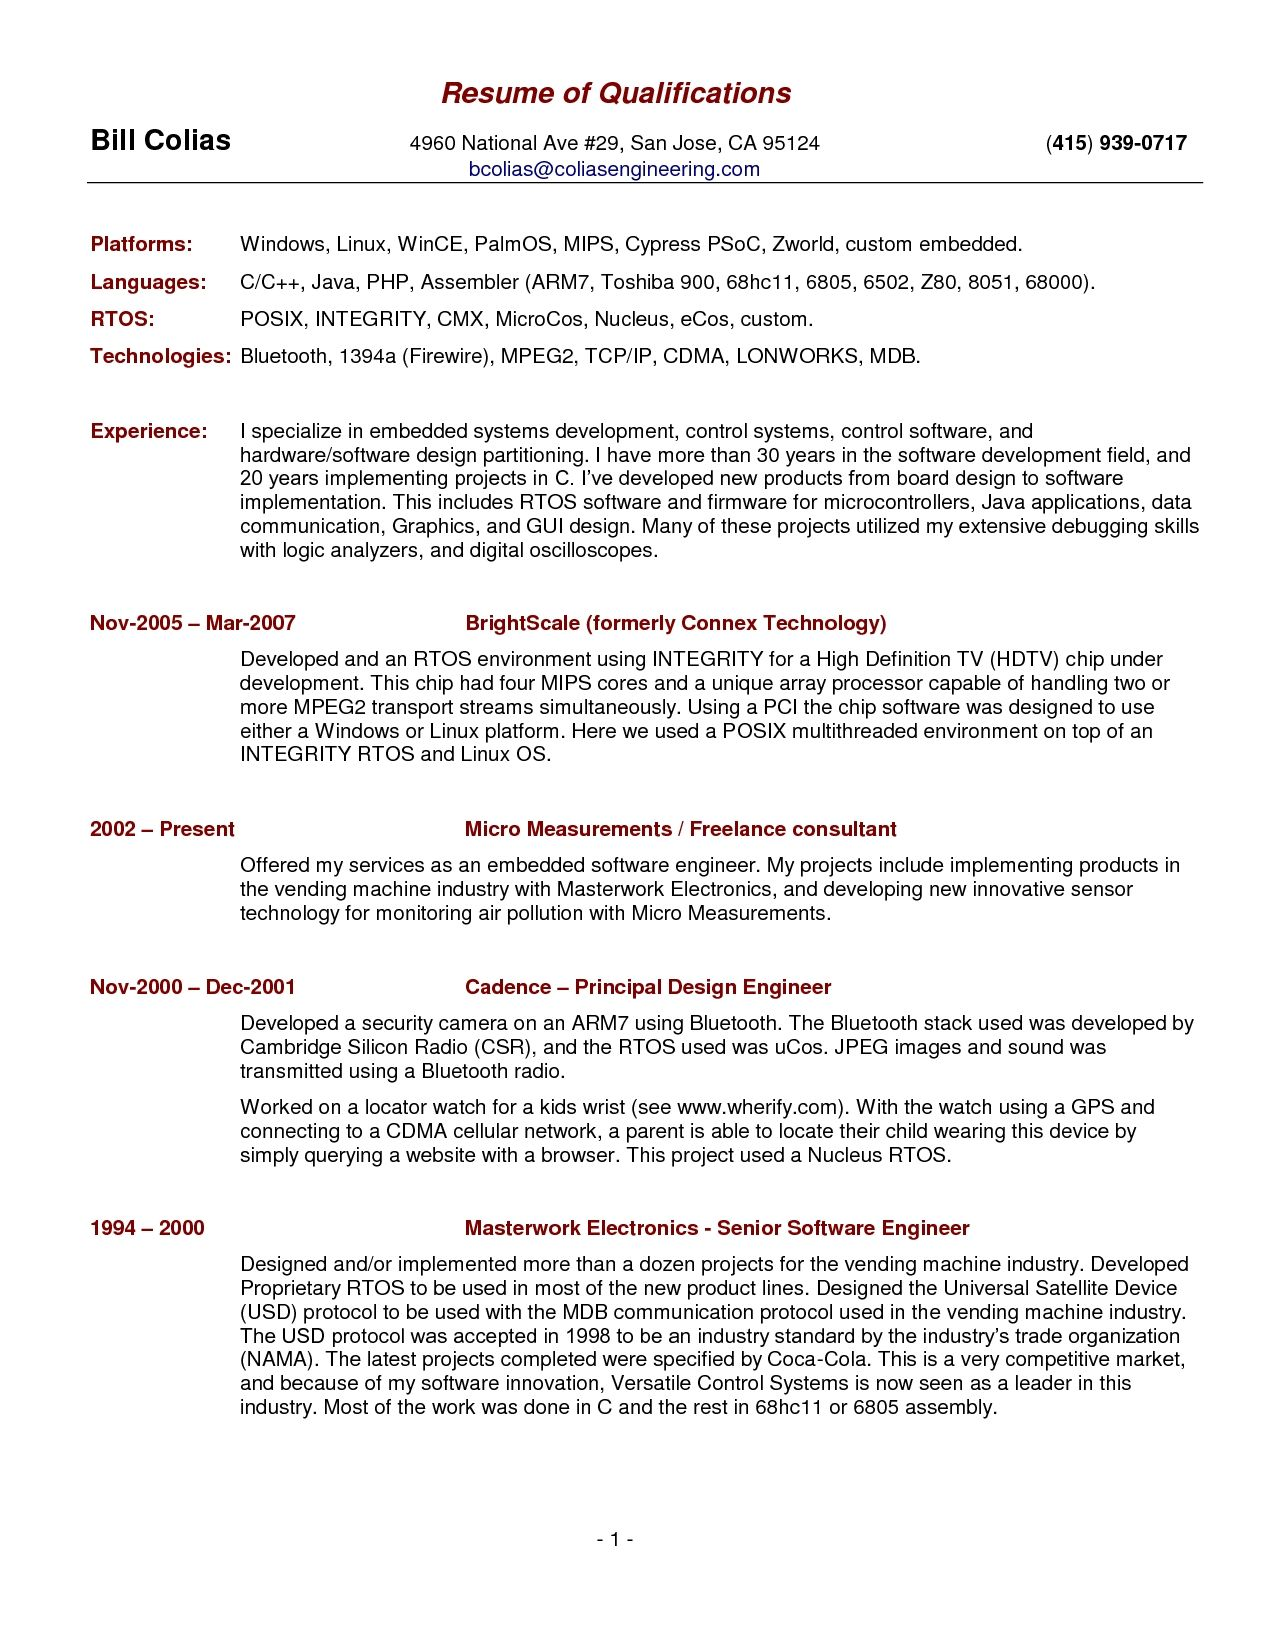 Qualifications Resume Sample Qualifications For A Resume Examples 7f8ea3a2a New Resume